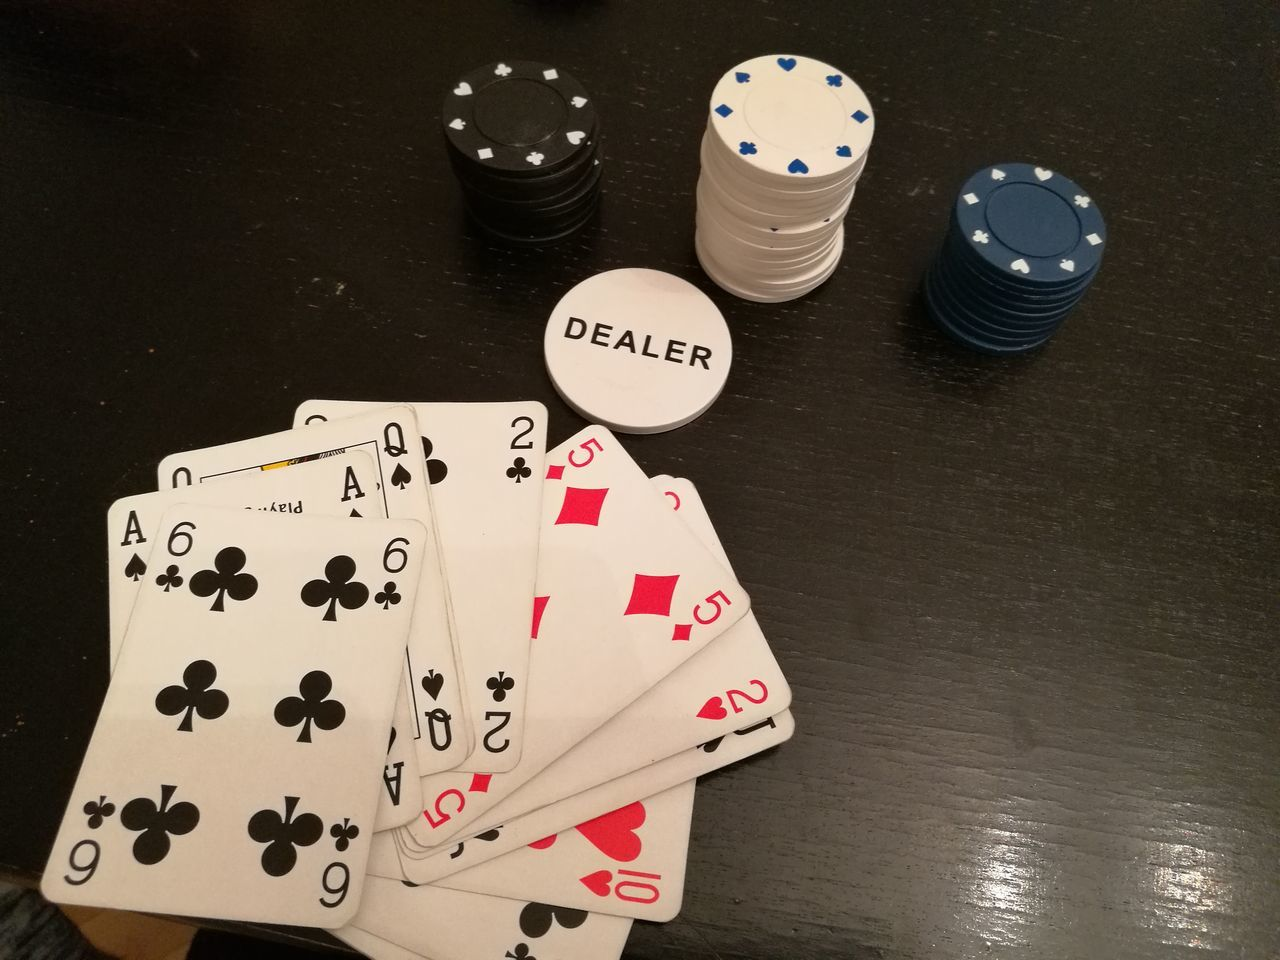 gambling, luck, cards, table, chance, high angle view, indoors, no people, poker - card game, gambling chip, leisure games, close-up, dice, day